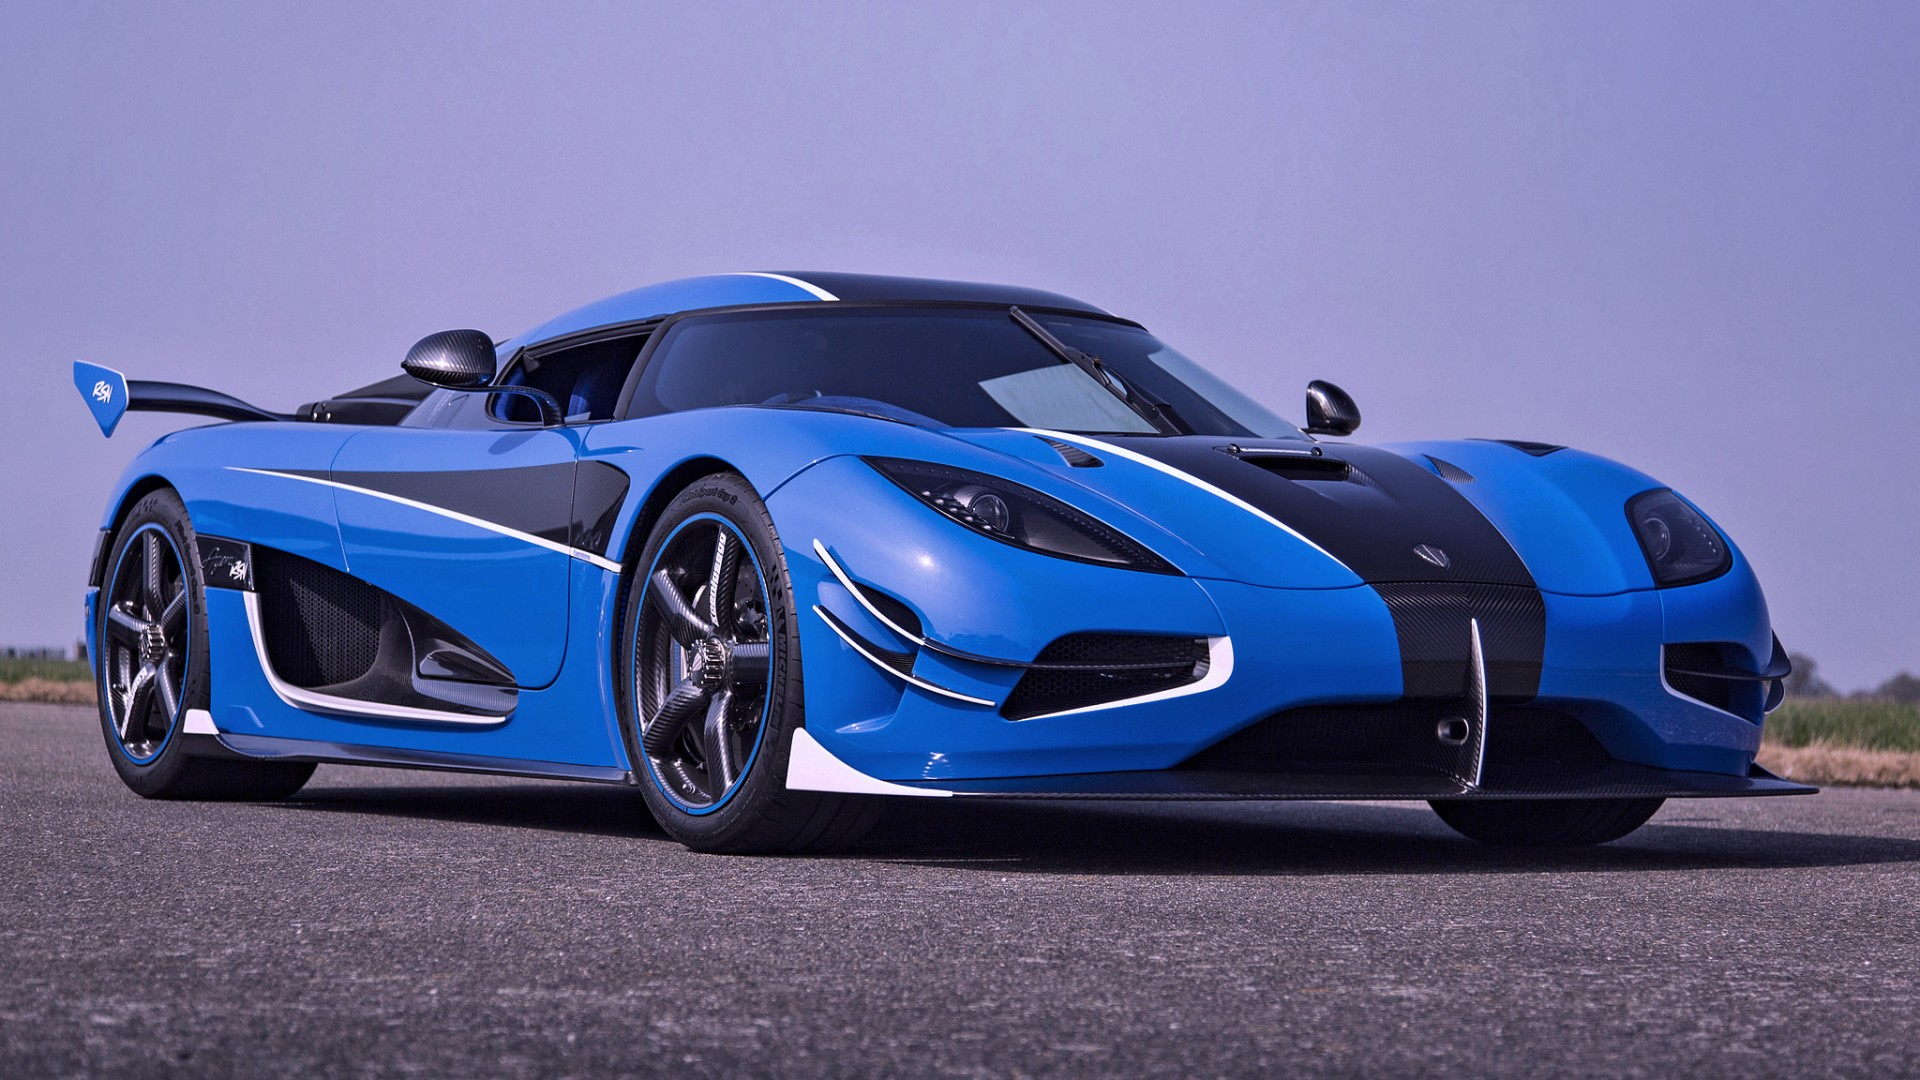 Koenigsegg Agera RSN 2018 Wallpaper | HD Car Wallpapers ...